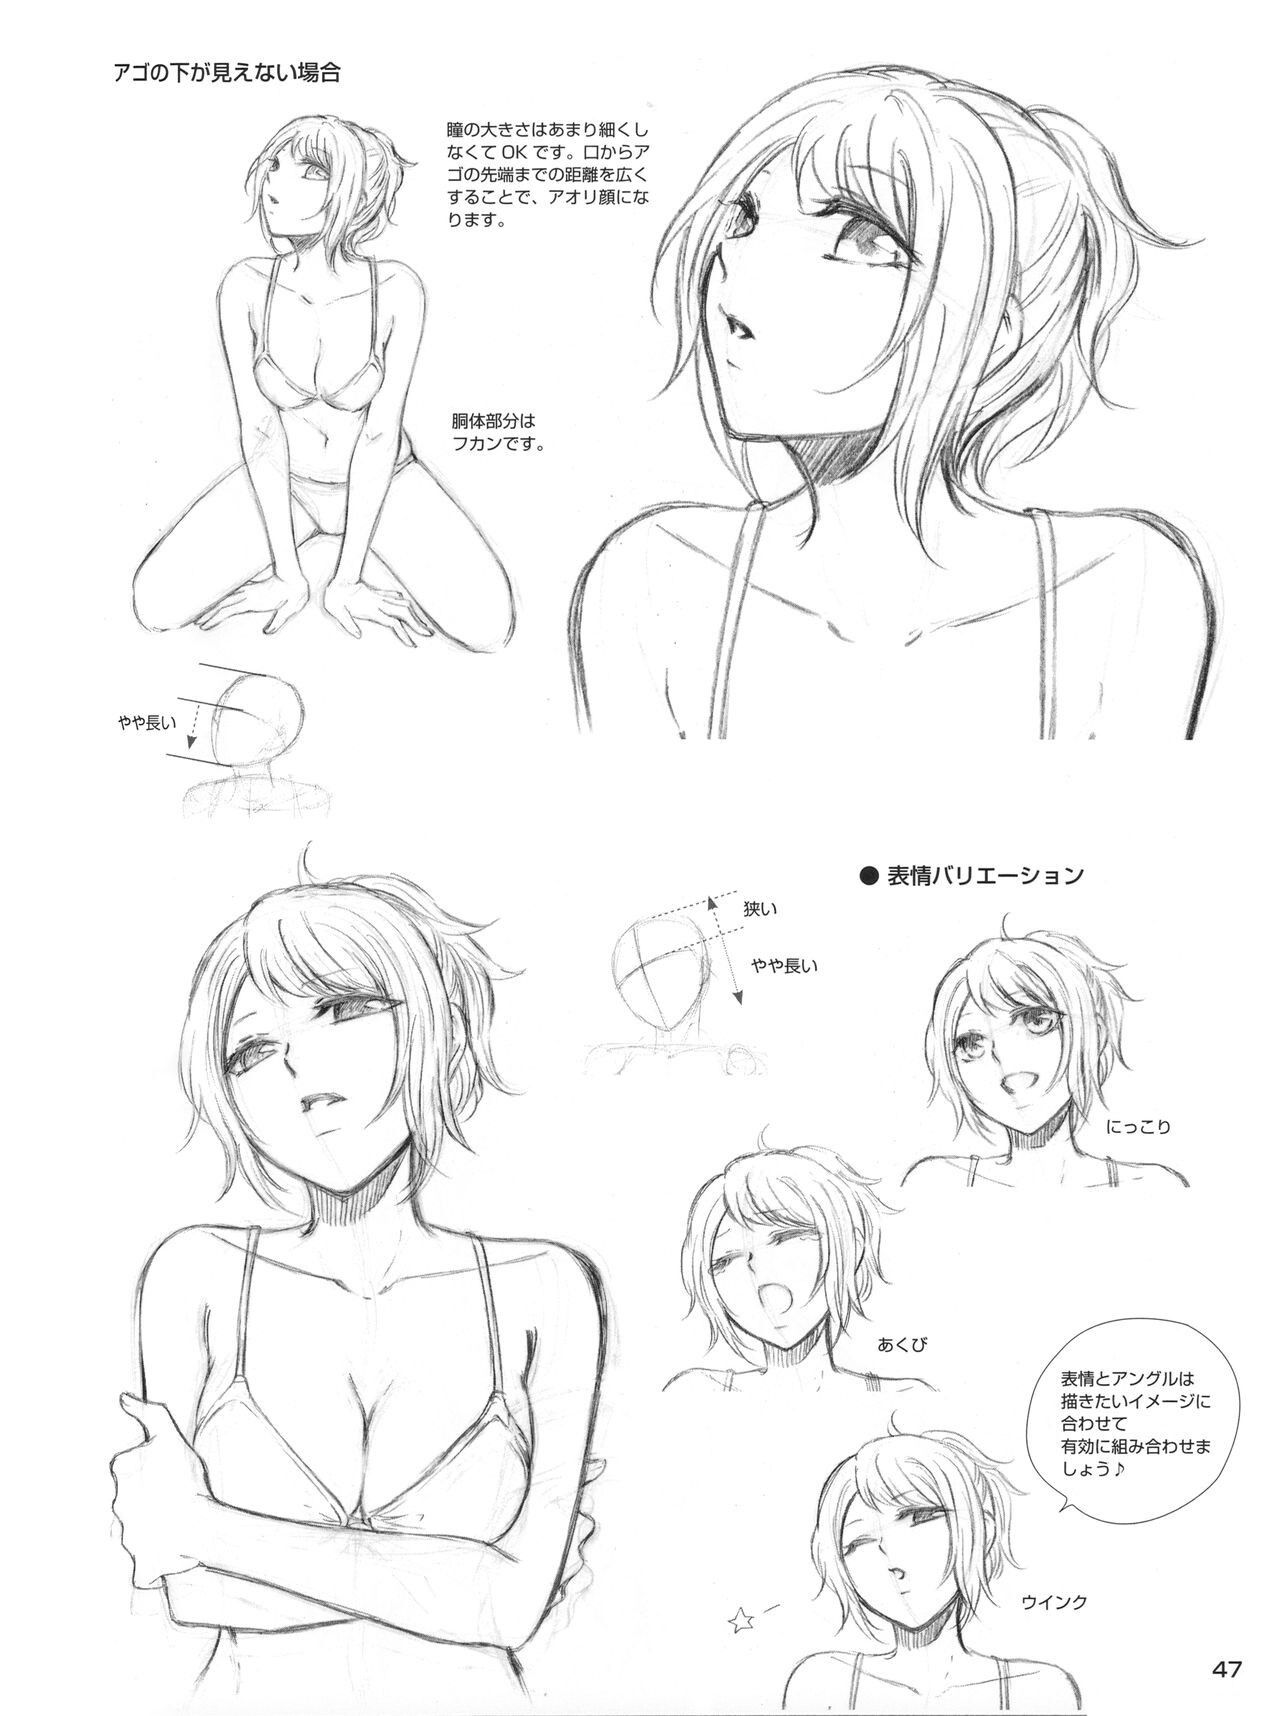 drawing tutorials anime pin by dt frog on sketch in 2020 manga drawing tutorials drawing anime tutorials